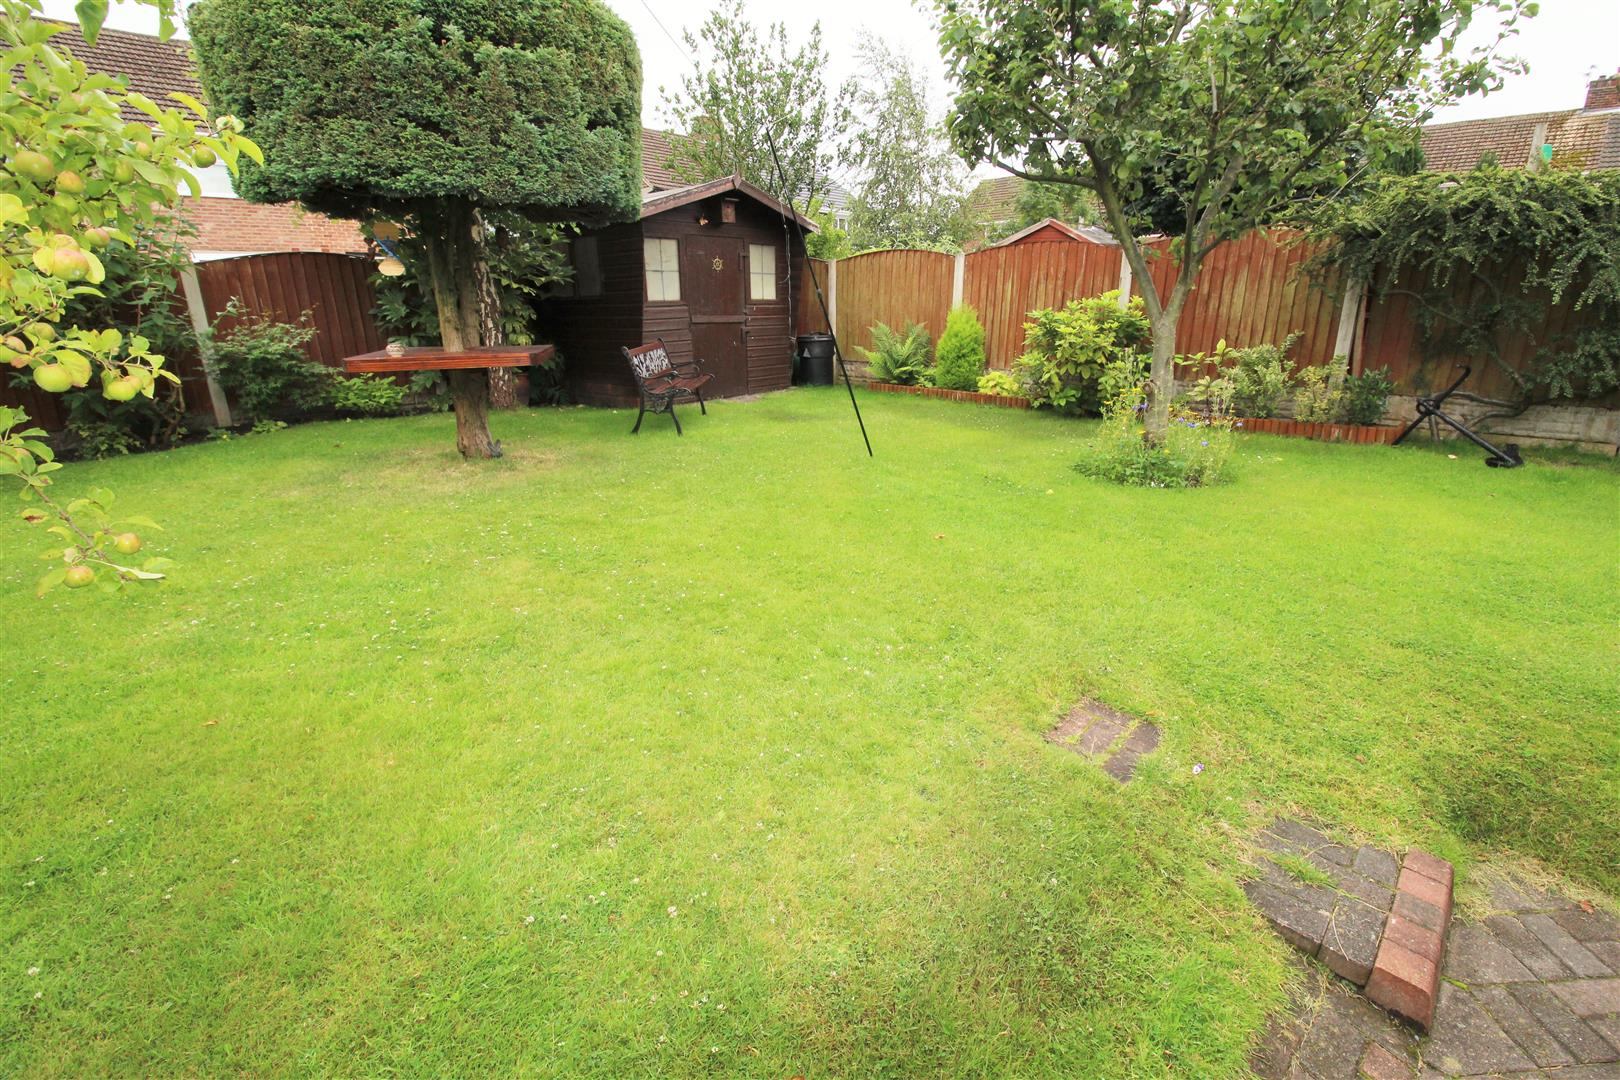 4 Bedrooms, House - Semi-Detached, North Avenue, Aintree, Liverpool